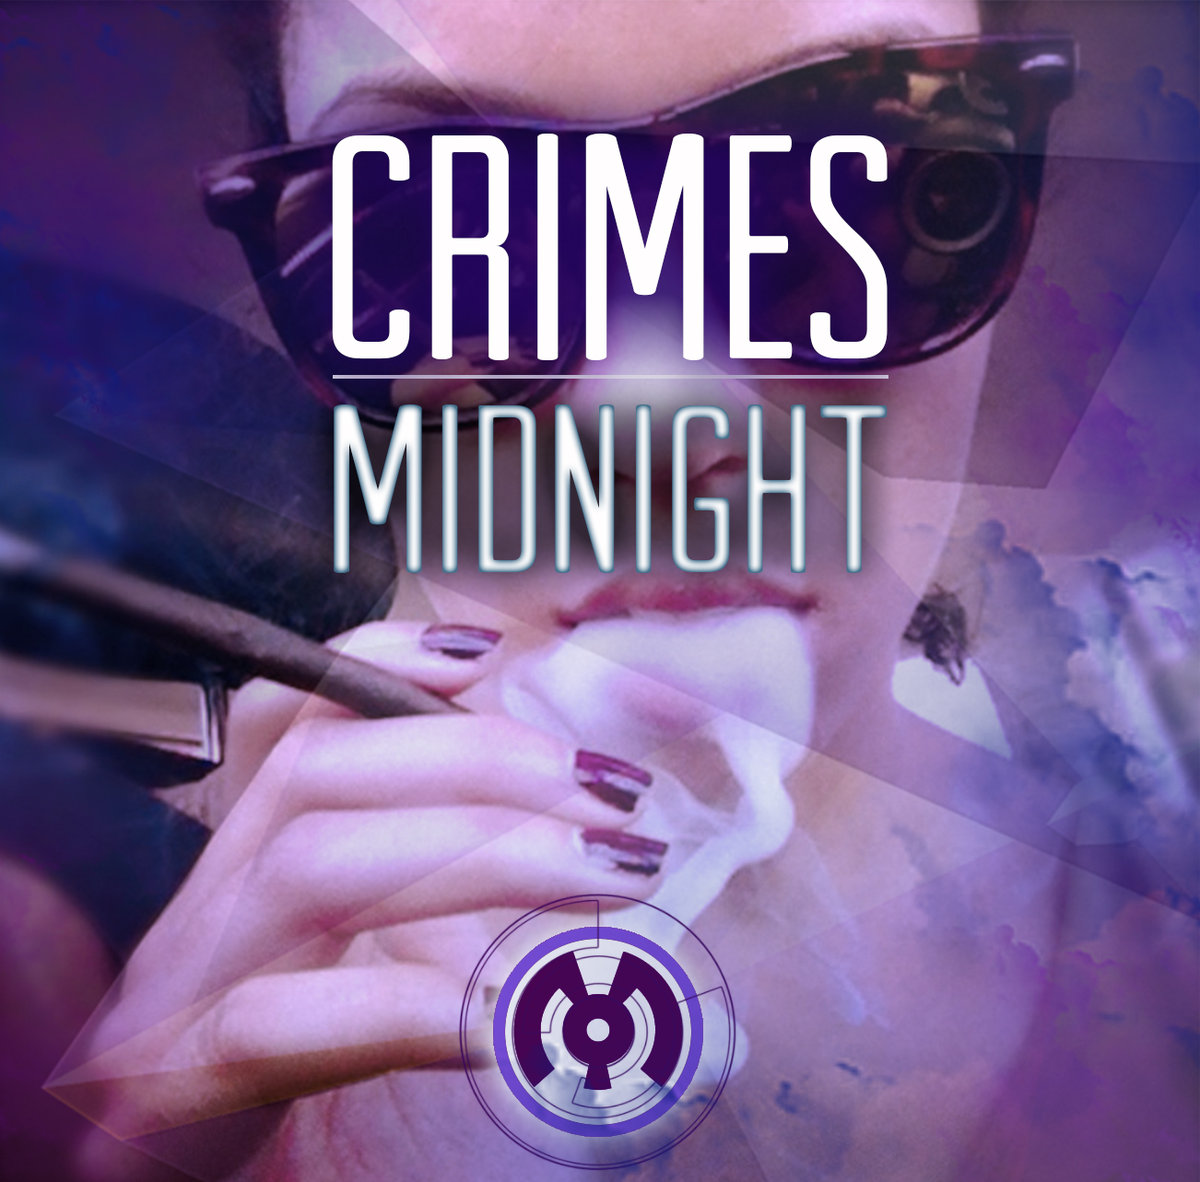 Crimes! - I Wanna Know @ 'Midnight' album (electronic, dubstep)